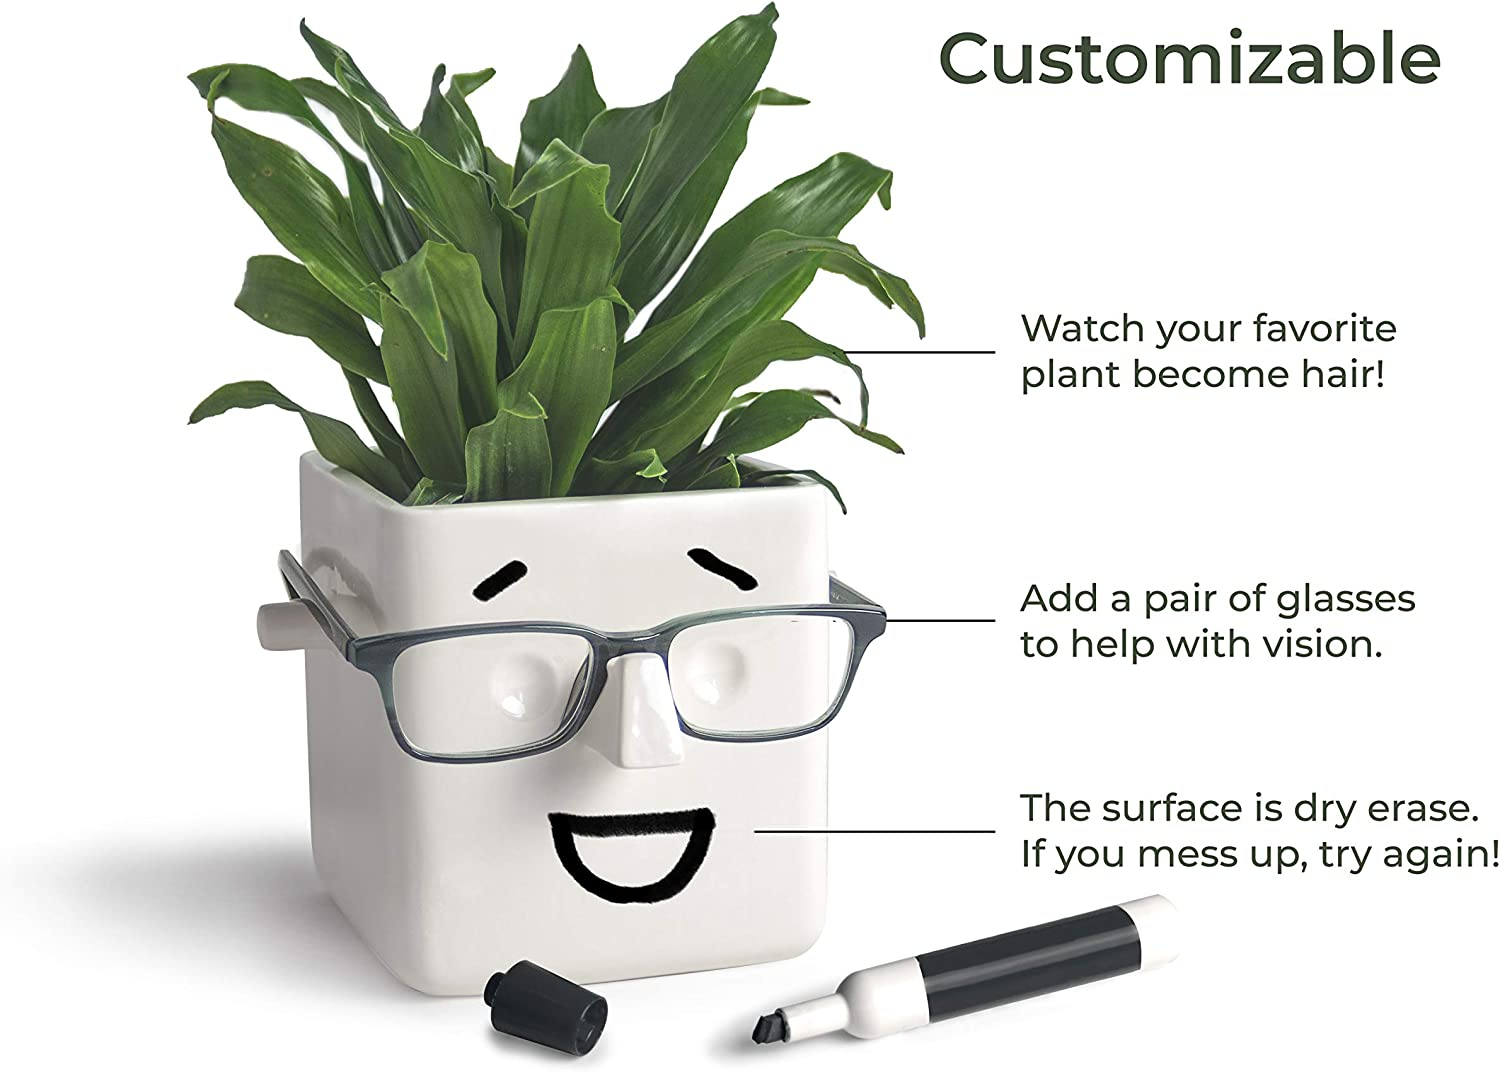 30 Watt | FACE Plant | Novelty Planter That Holds Plants, Glasses & You Can Draw On It. Elegant Ceramic Vase for Succulents, Cacti or Your Average Fern for Your Home | Back to College